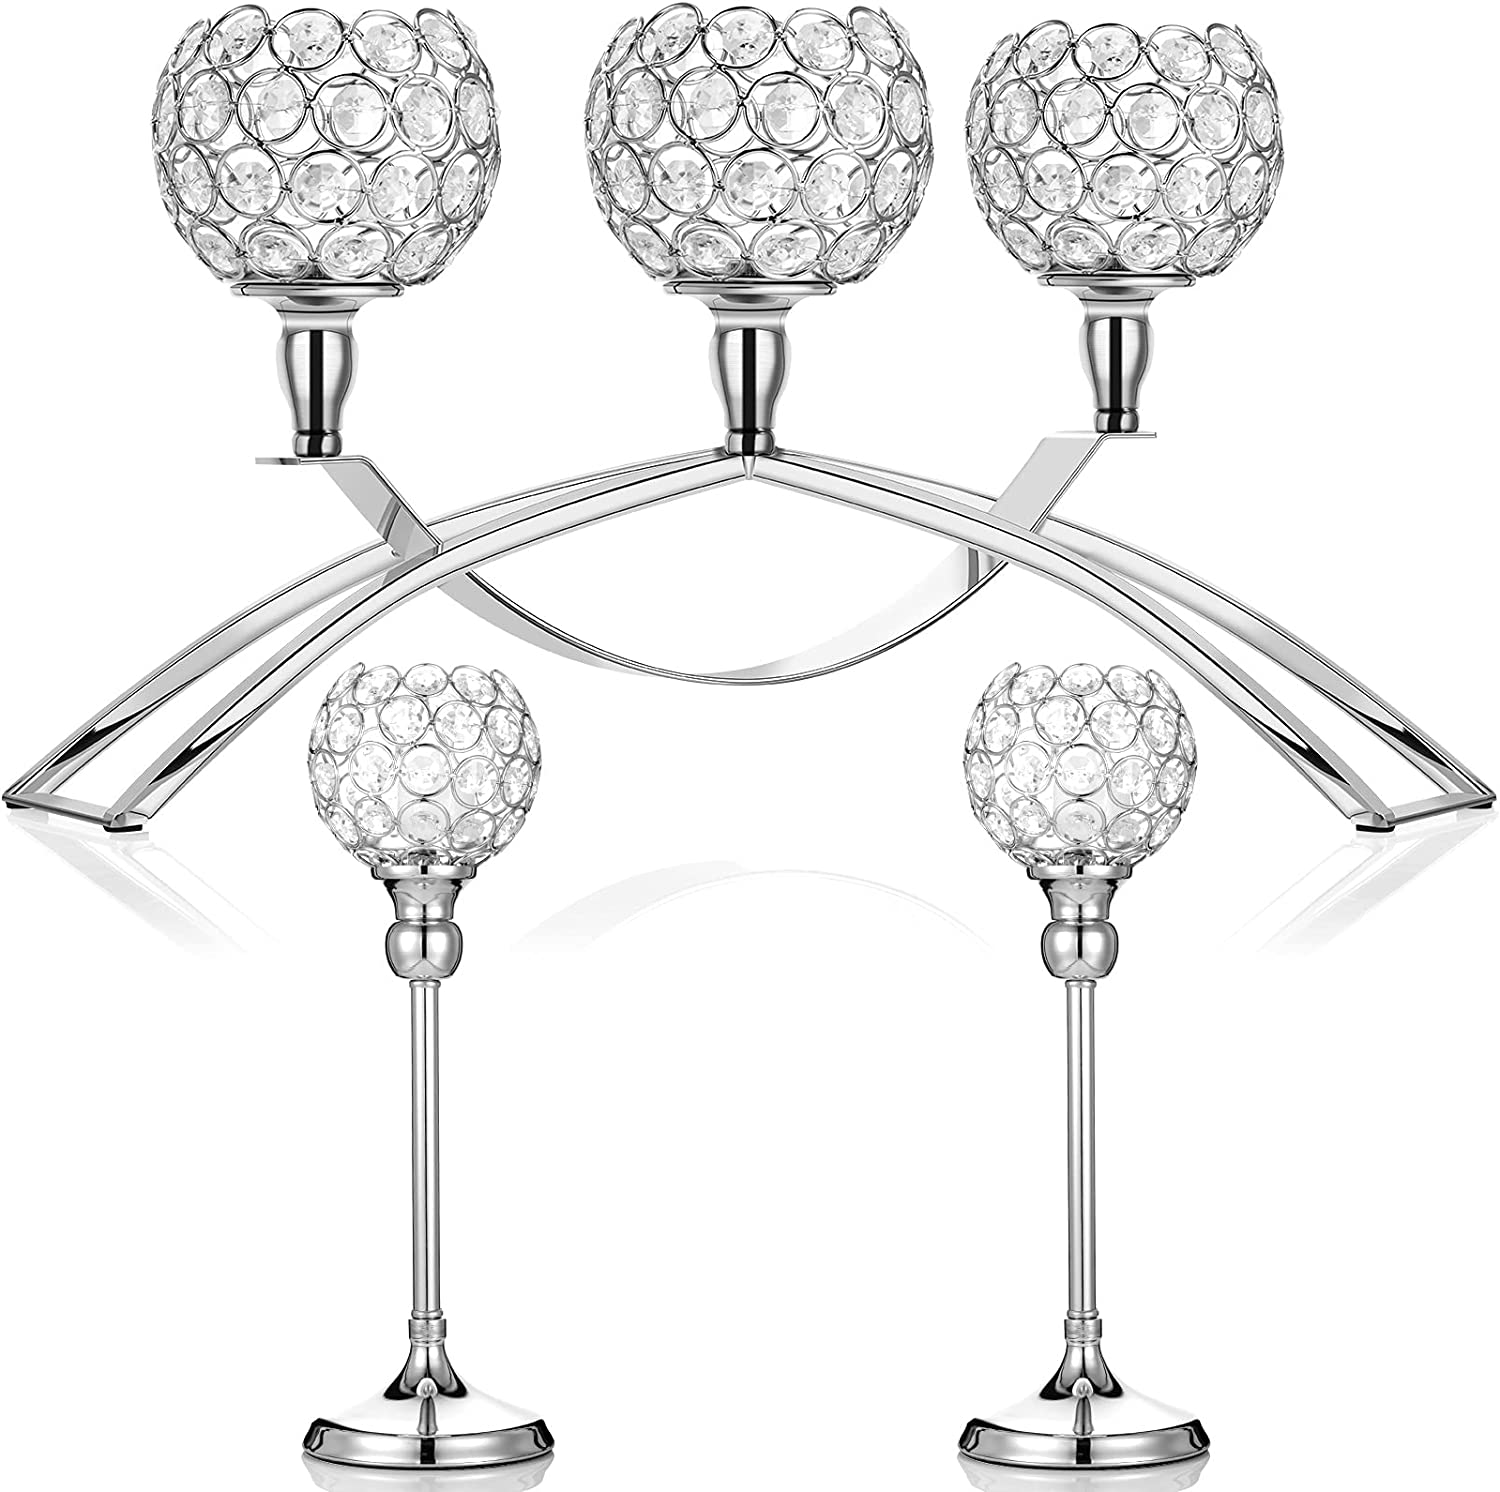 High material Inexpensive 3 Pieces Crystal Candle Arch Holders Holde Bridge